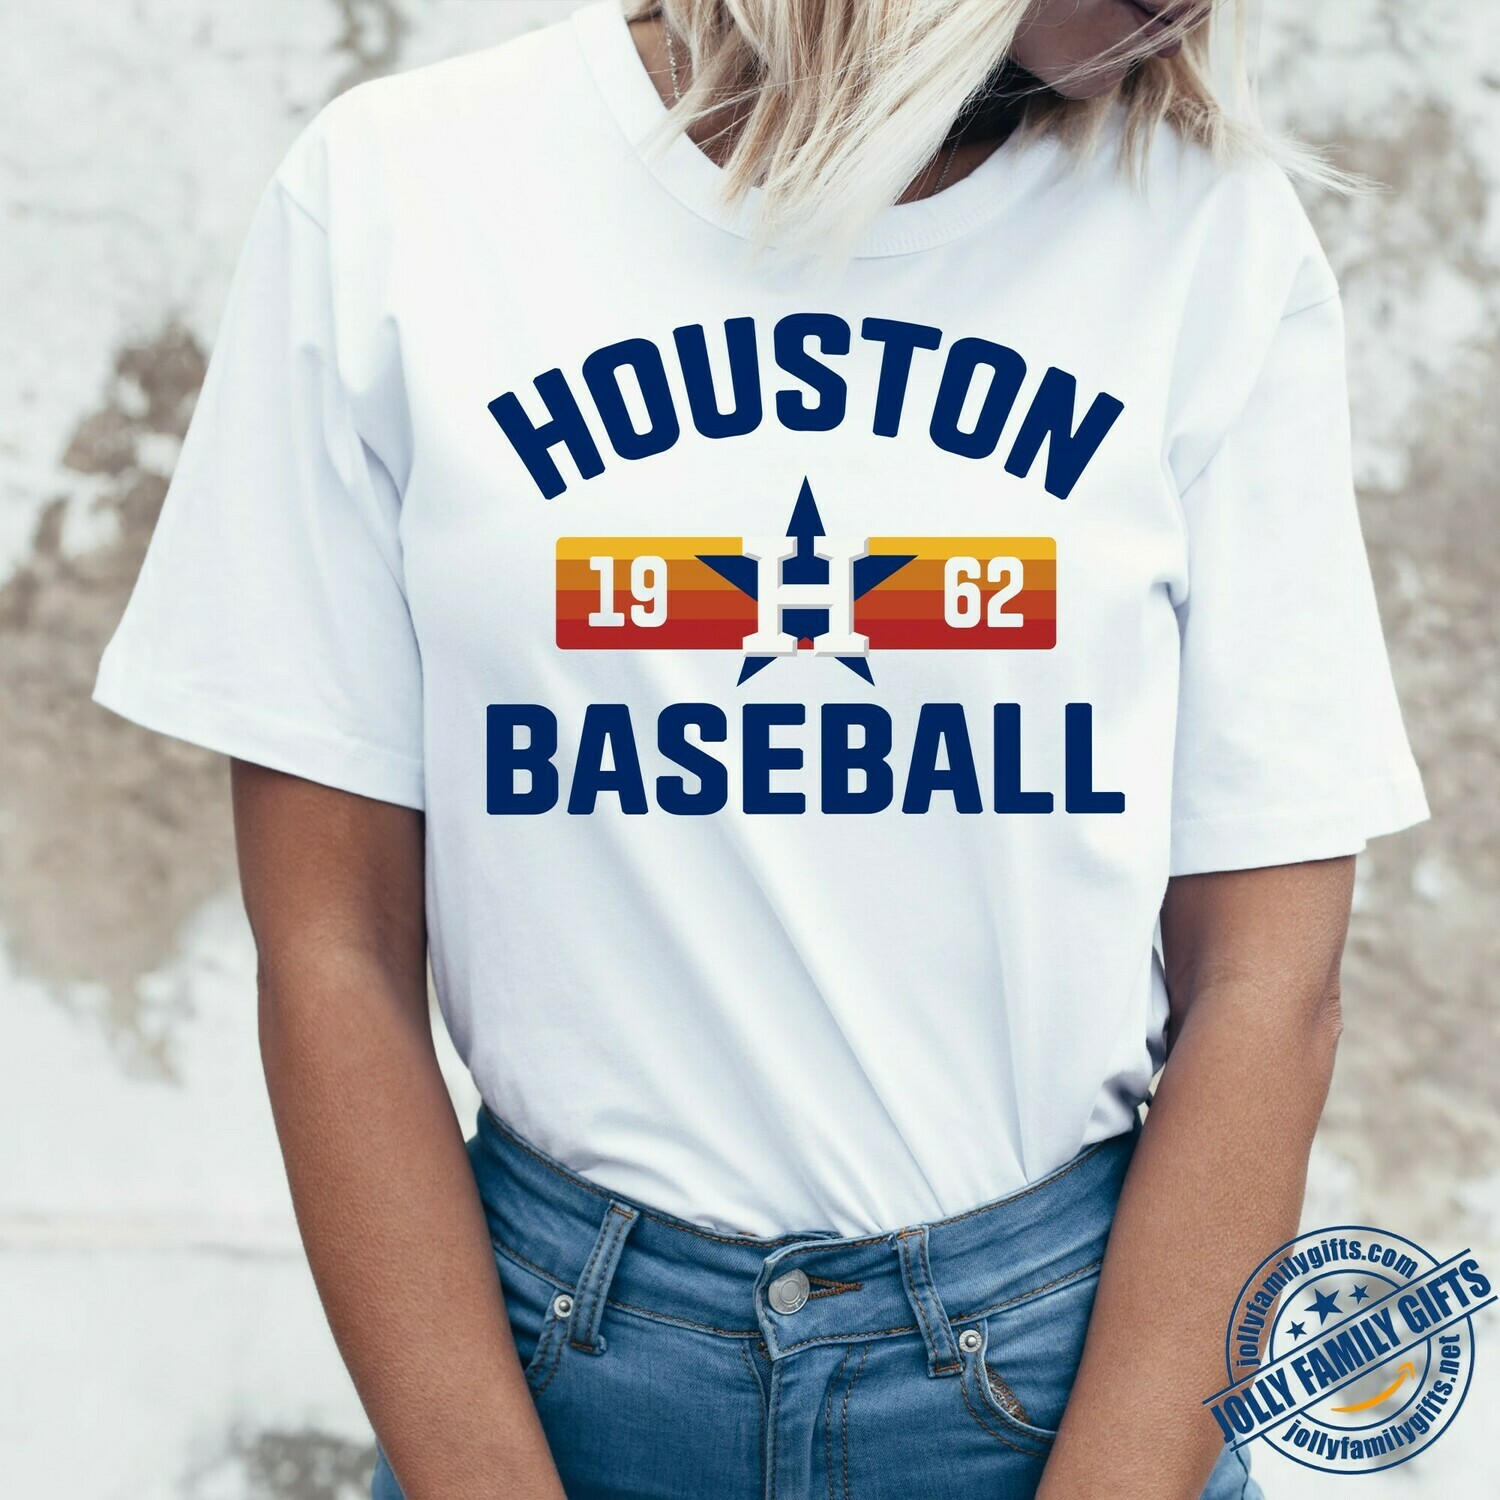 Houston Astericks Cheaters Astros H-Town MLB Baseball stealing signs Cheating scandal for Men Women Unisex T-Shirt Hoodie Sweatshirt Sweater Plus Size for Ladies Women Men Kids Youth Gifts Tee Jolly